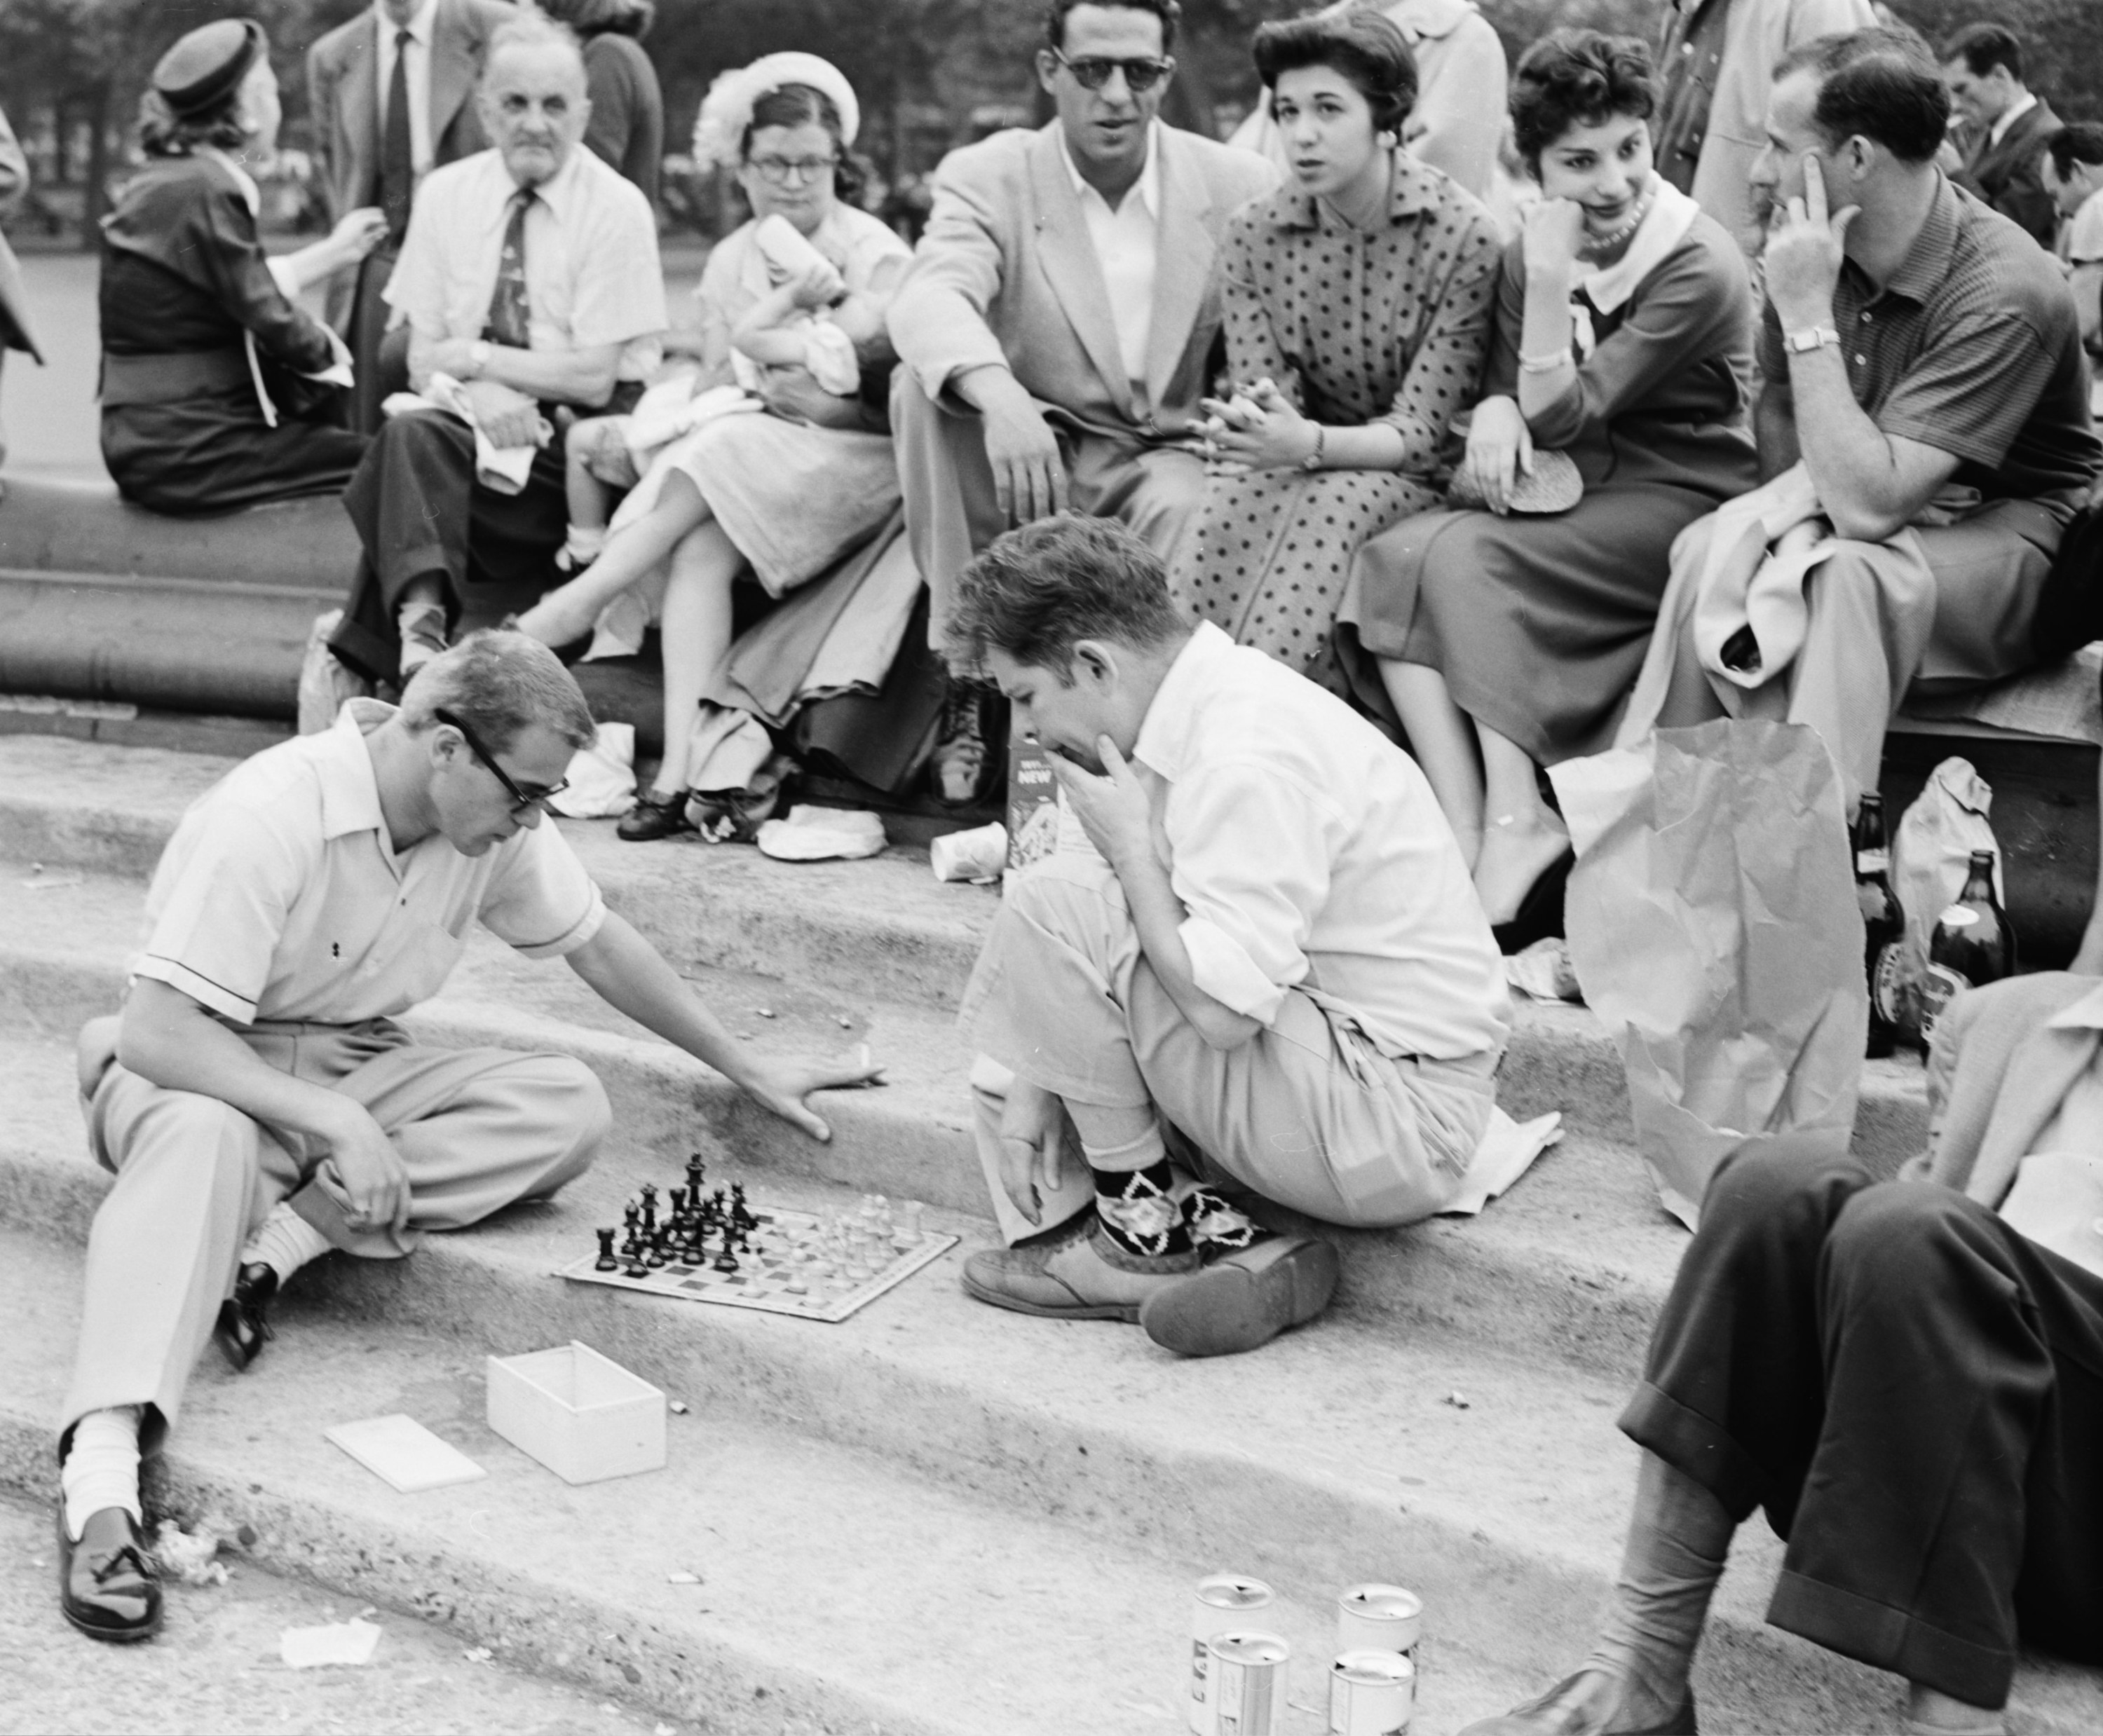 A group of people sitting on stairs at a park surround two men kneeling and playing chess